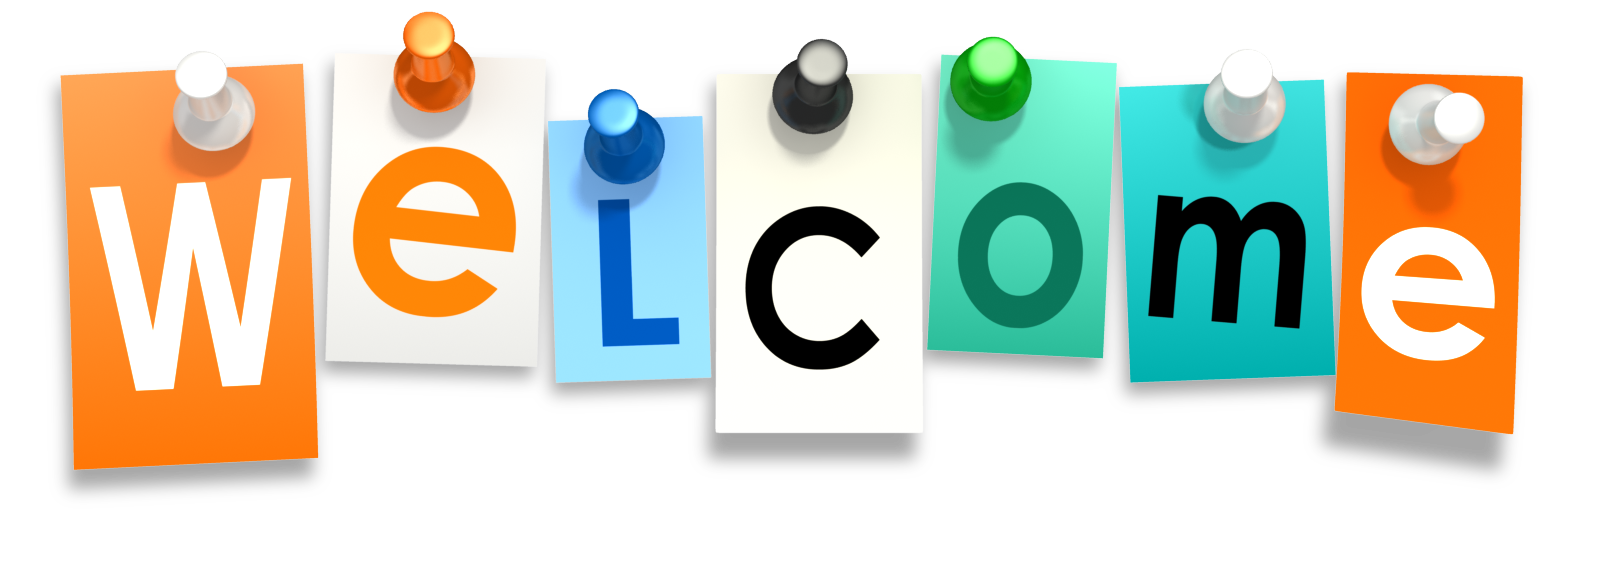 Welcome PNG - 24999